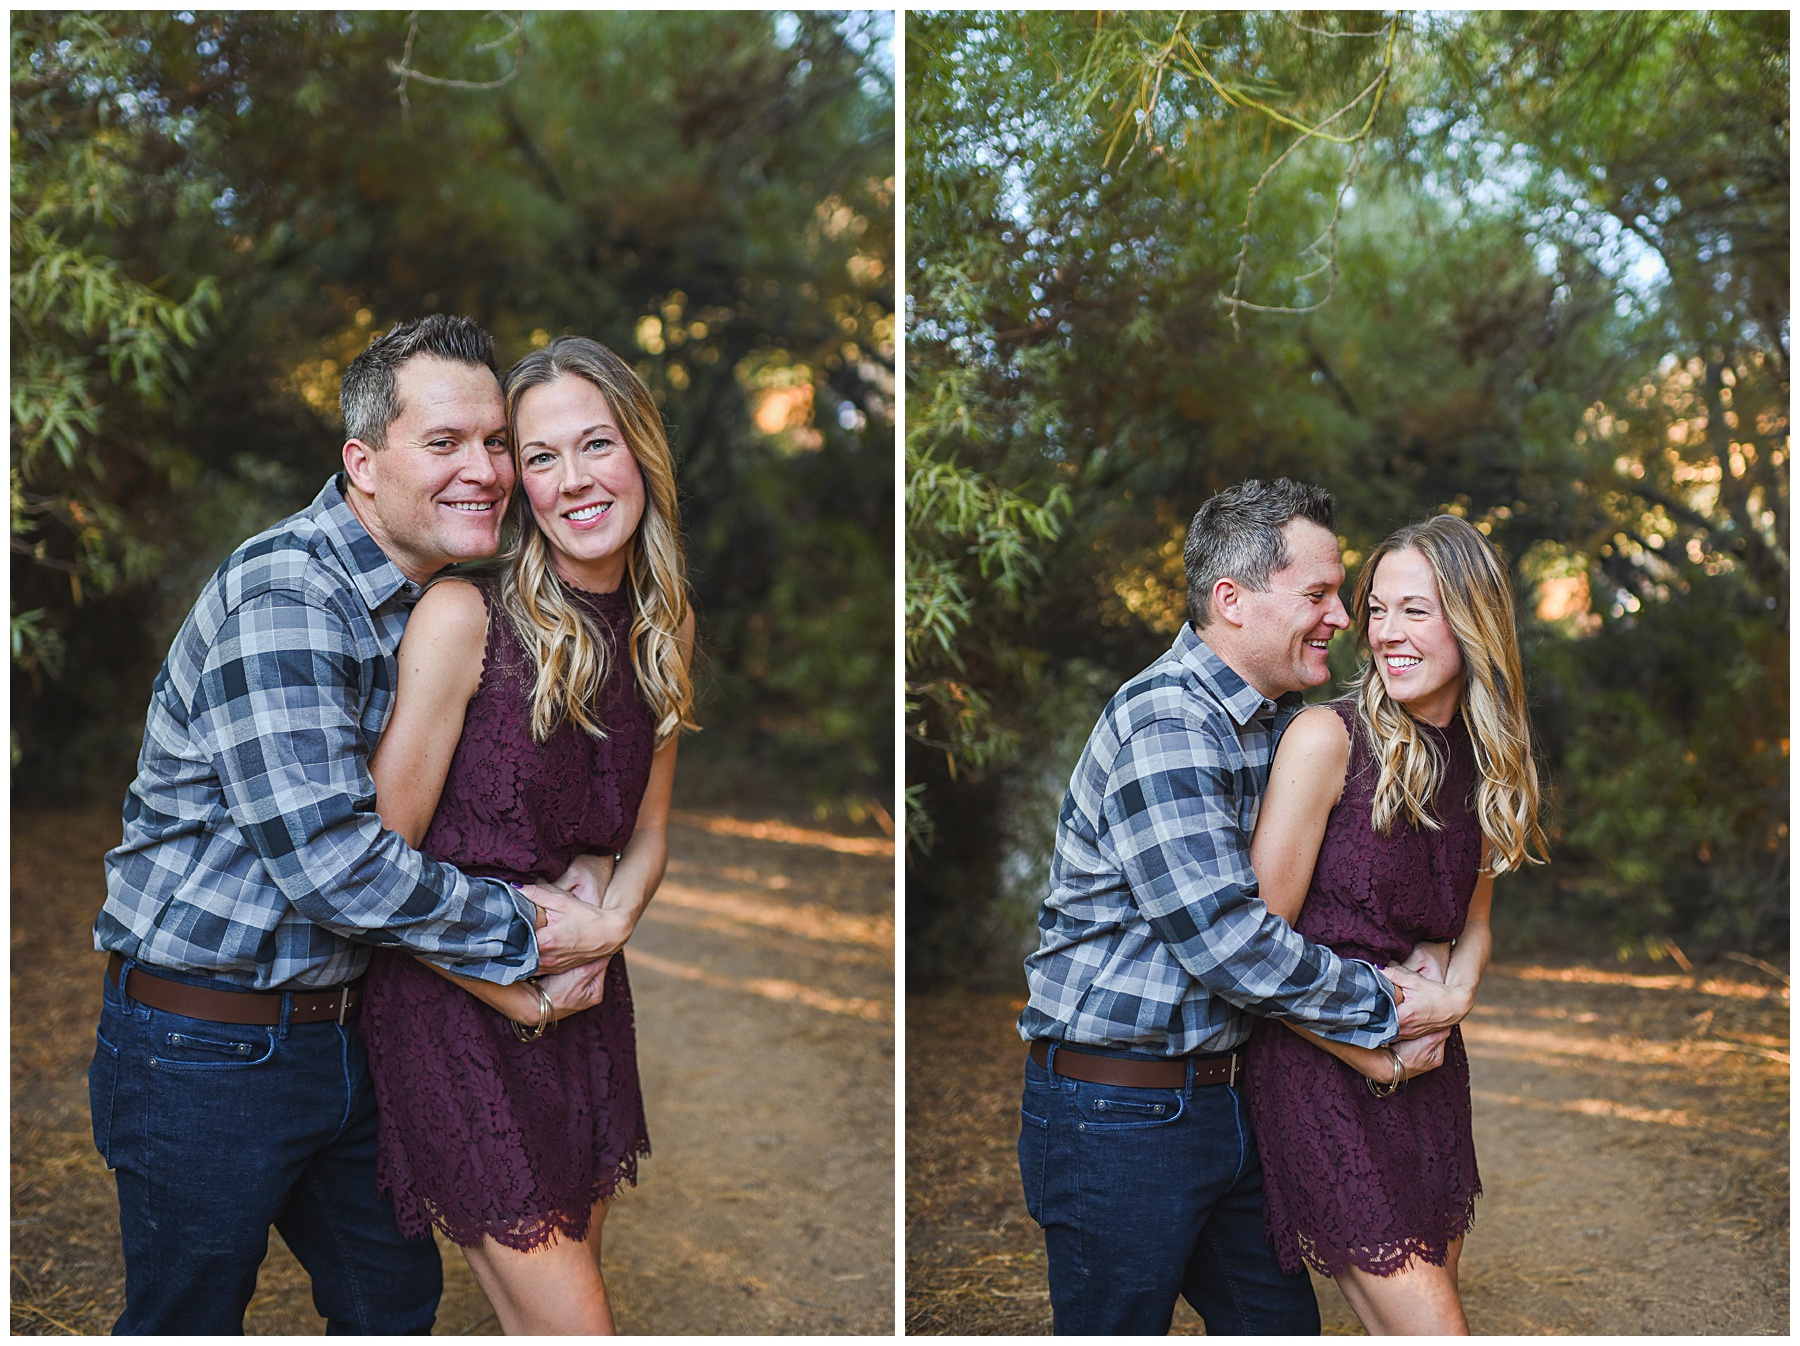 Mom + Dad | Phoenix Lifestyle Family Portraits